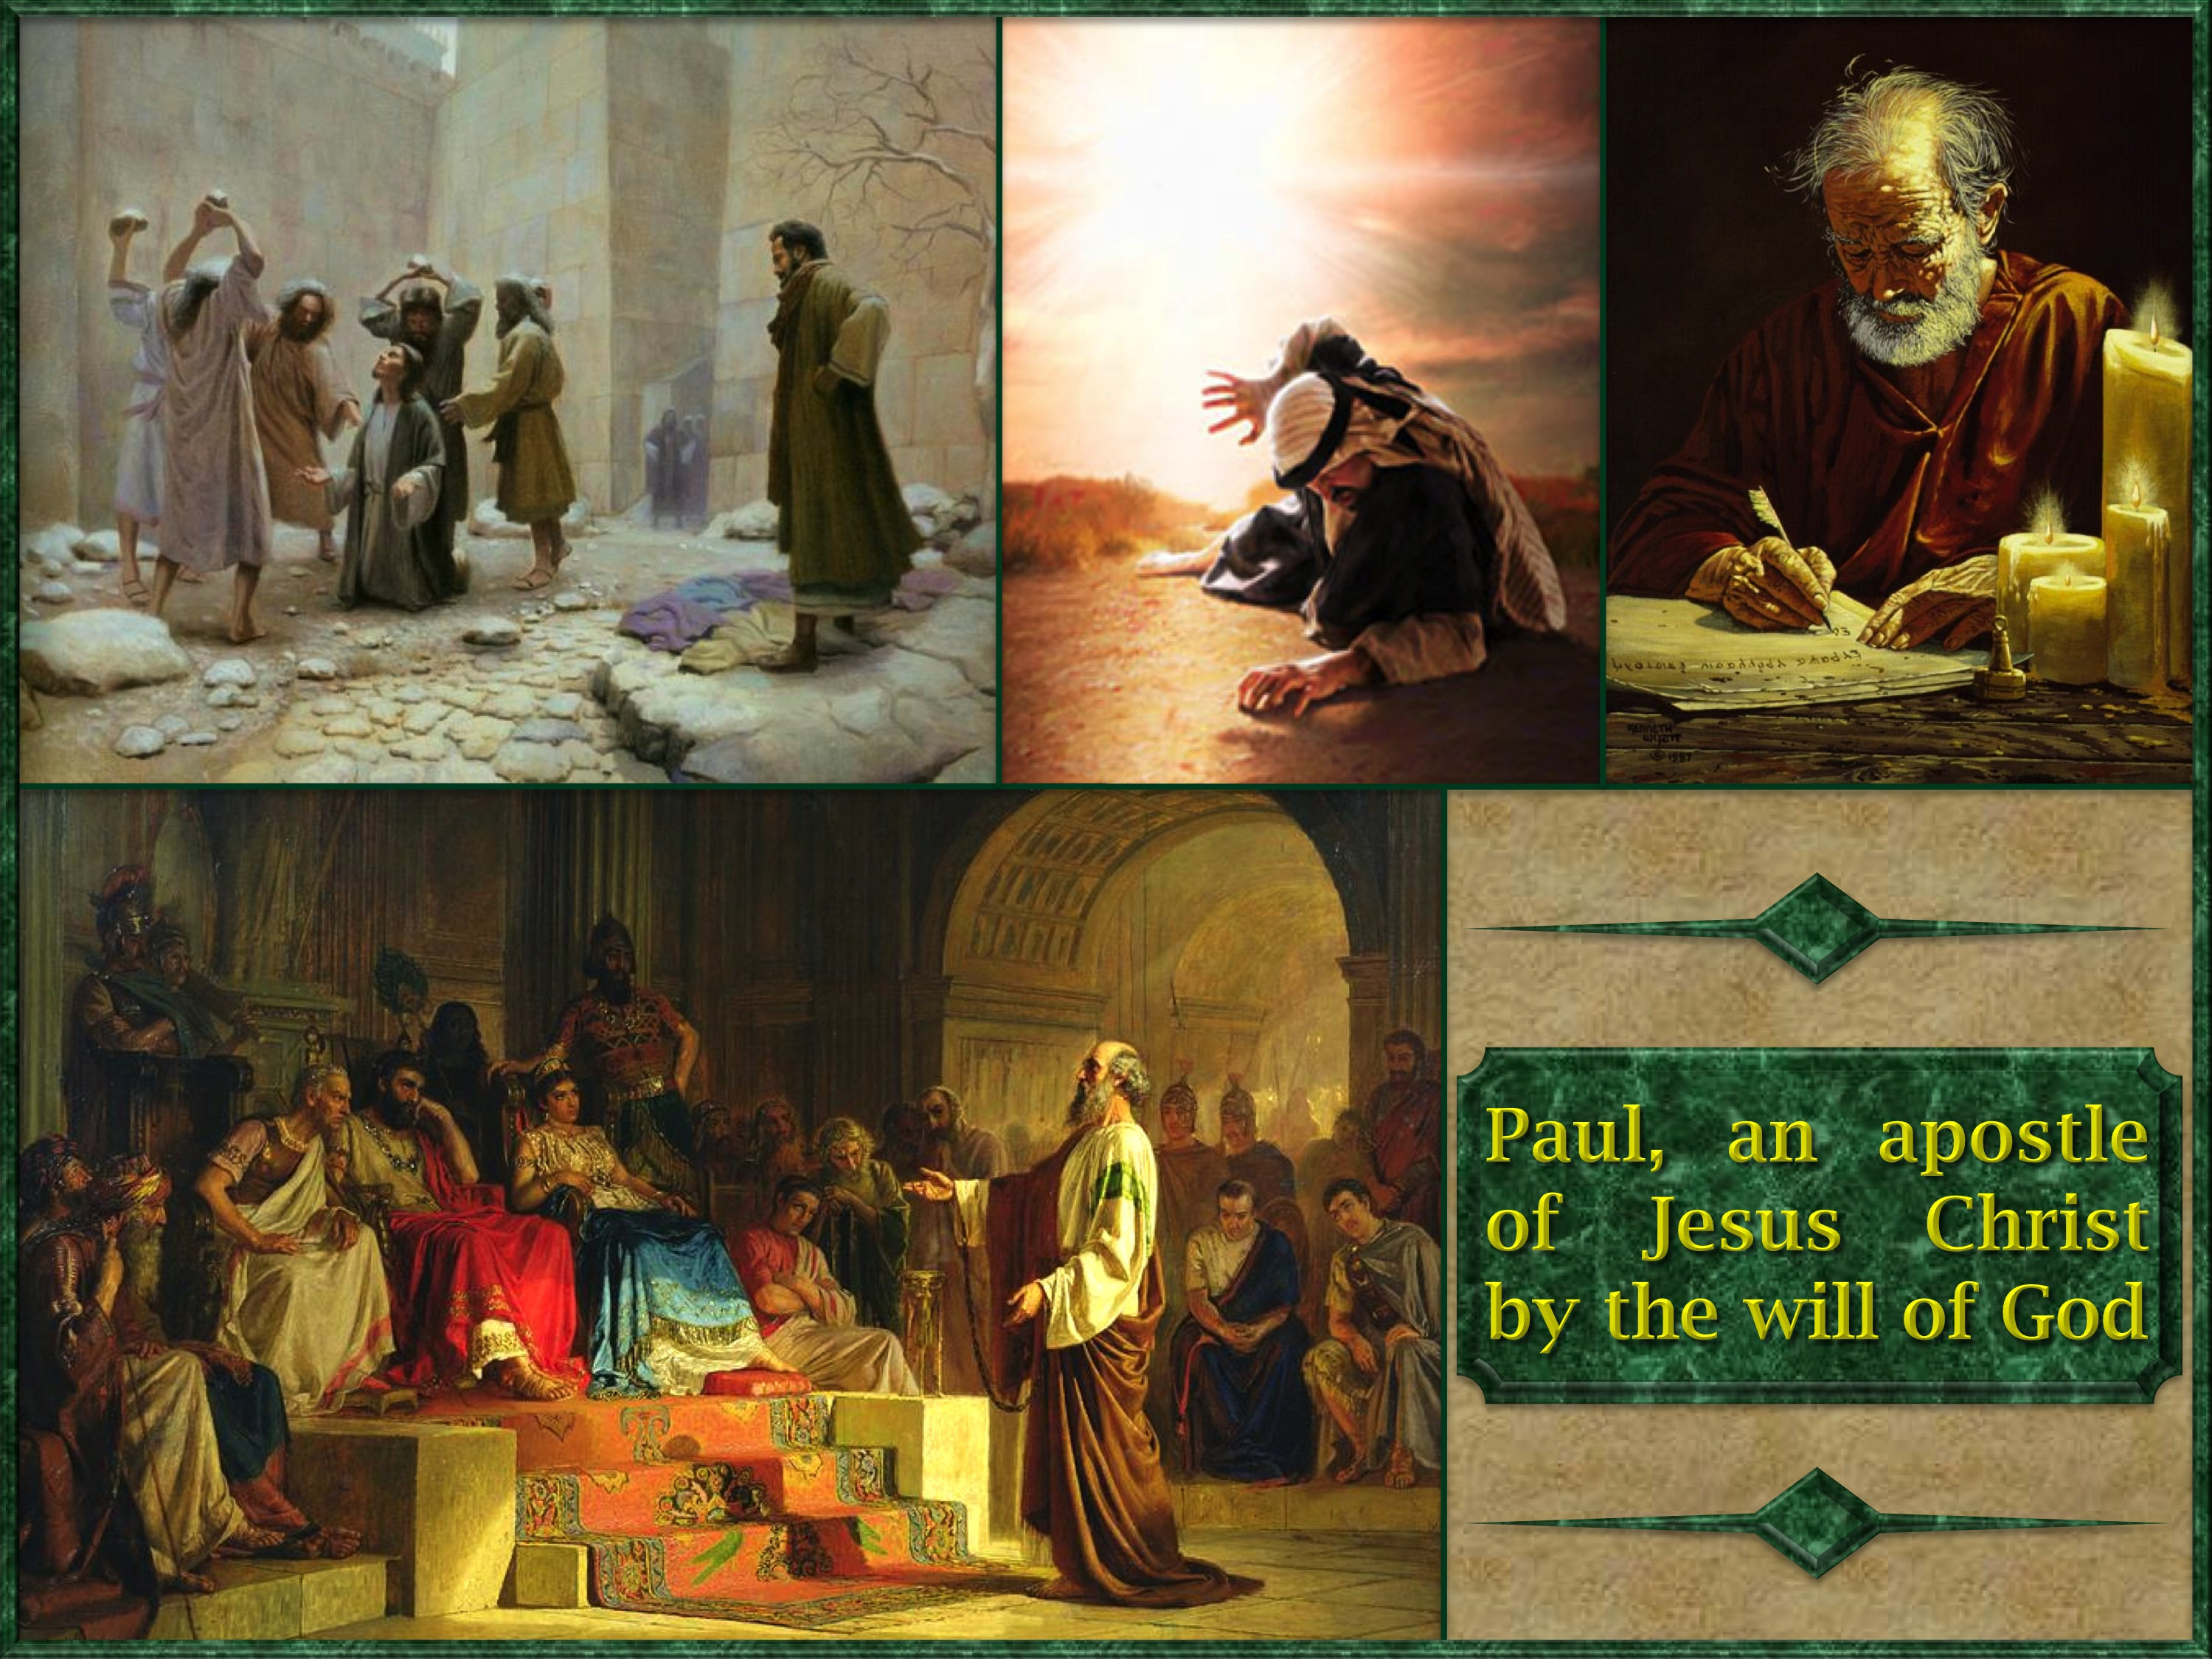 a focus on paul apostle on the bible However, evidence highly suggests the apostle paul's death occurred after his fifth missionary journey ended in 67 ad paul was likely beheaded by the romans, under emperor nero, sometime around may or june of 68 ad nero himself died by suicide on june 9th of the same year.